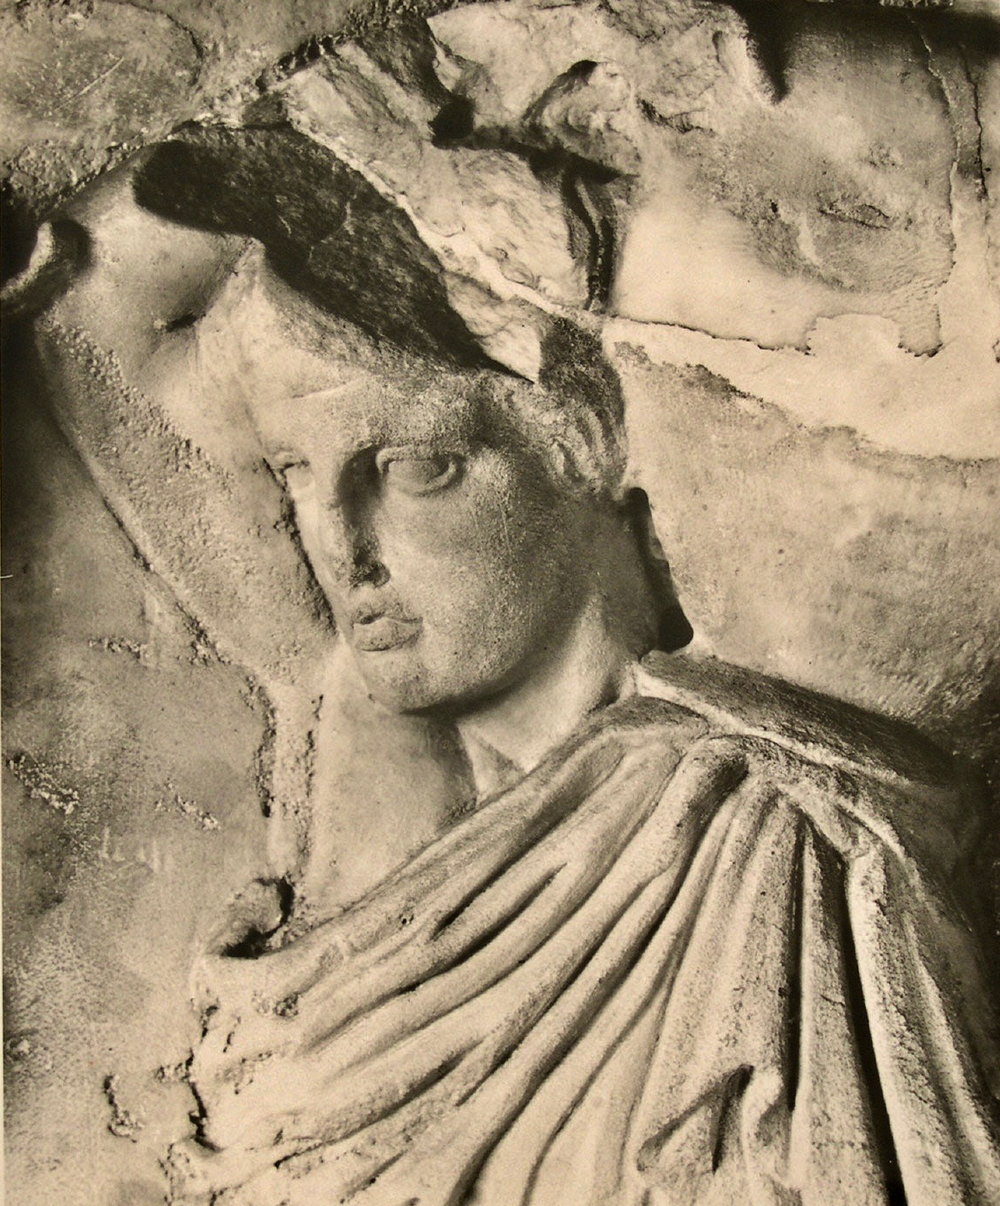 Walter Hedge, A Pitcher Bearer (detail) from the Parthenon's north frieze, circa 1930. The Acropolis Museum.